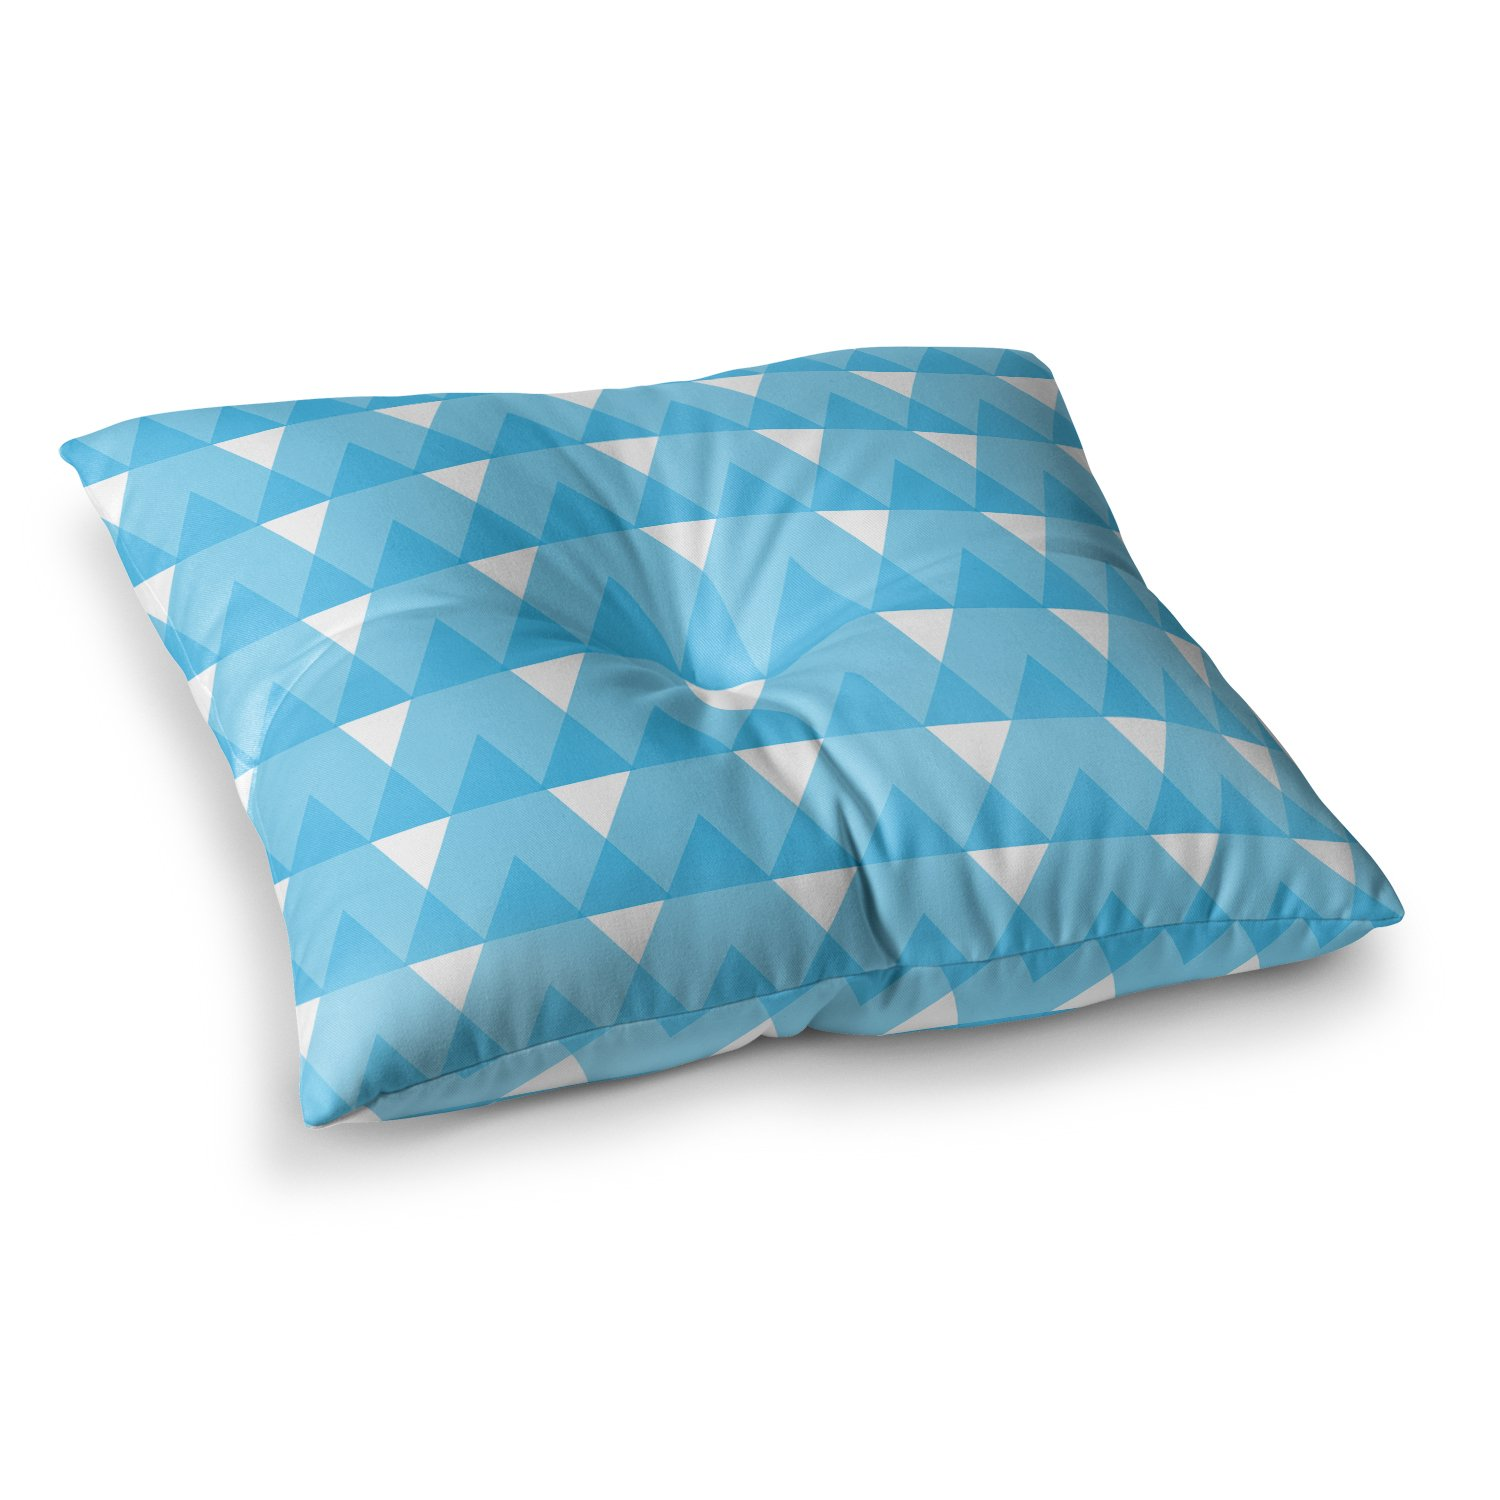 Kess InHouse Jackie Rose Cyan Triangles White Blue 26 x 26 Square Floor Pillow